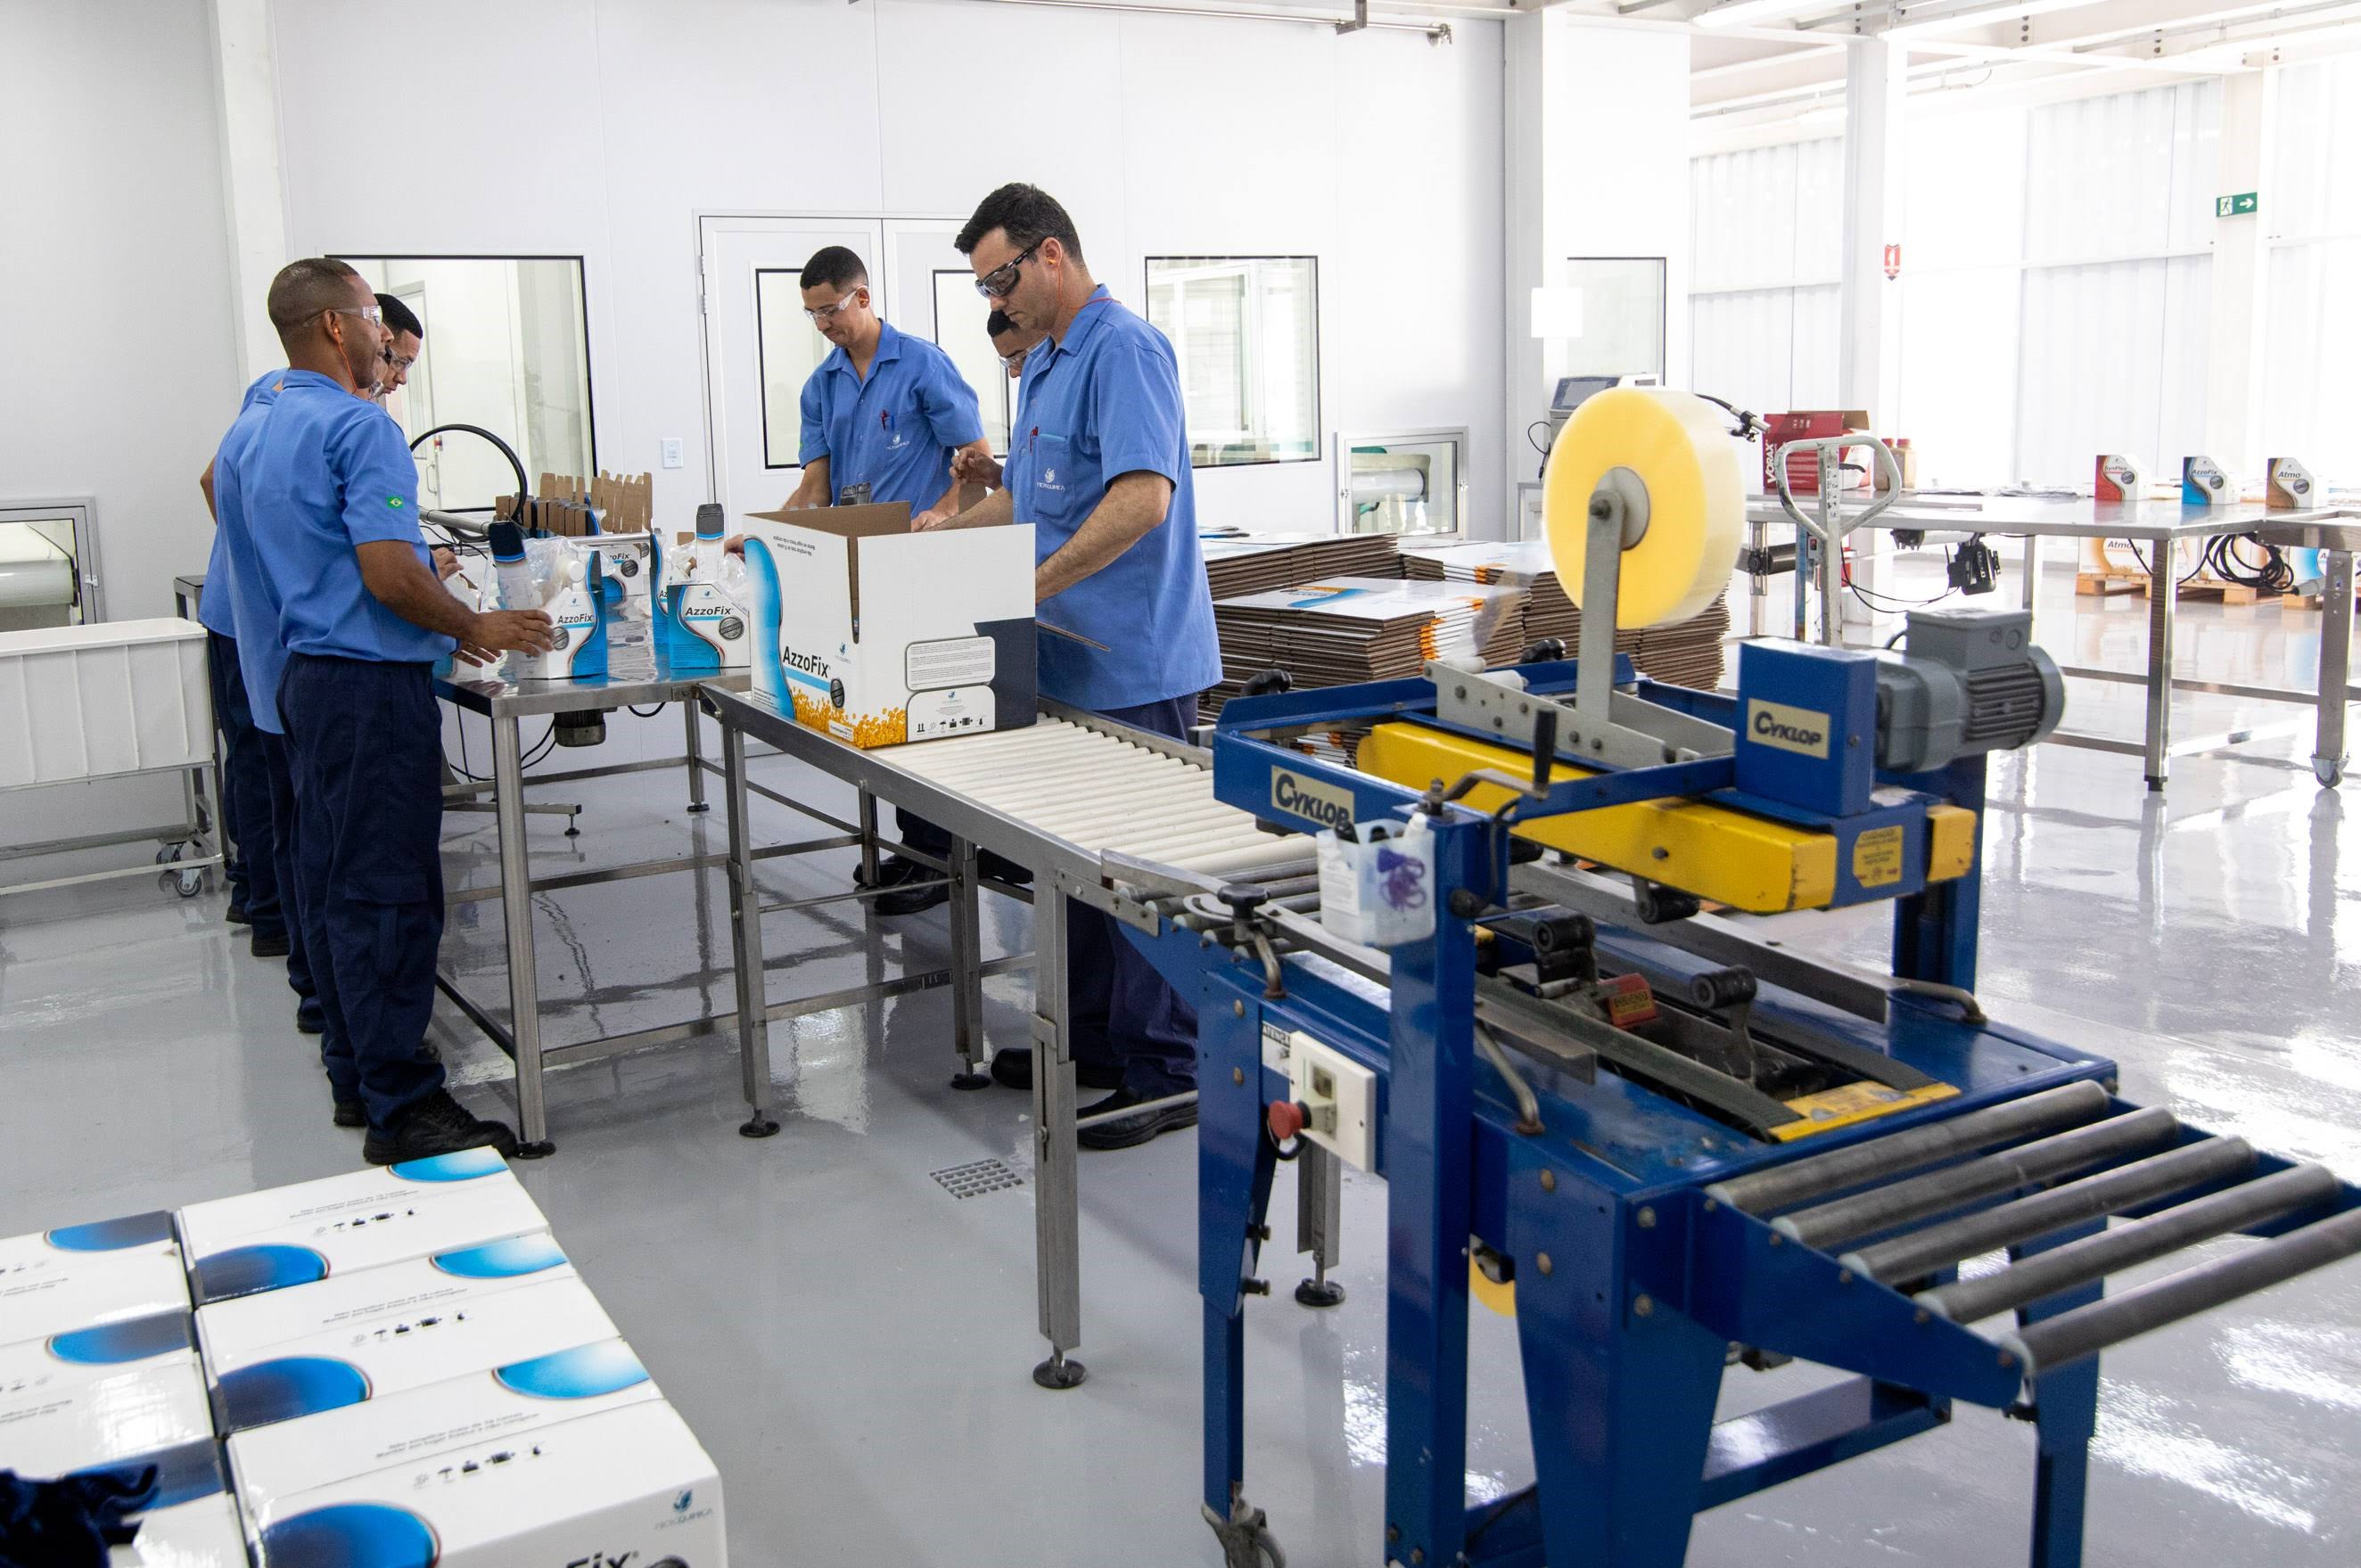 Microquimica factory